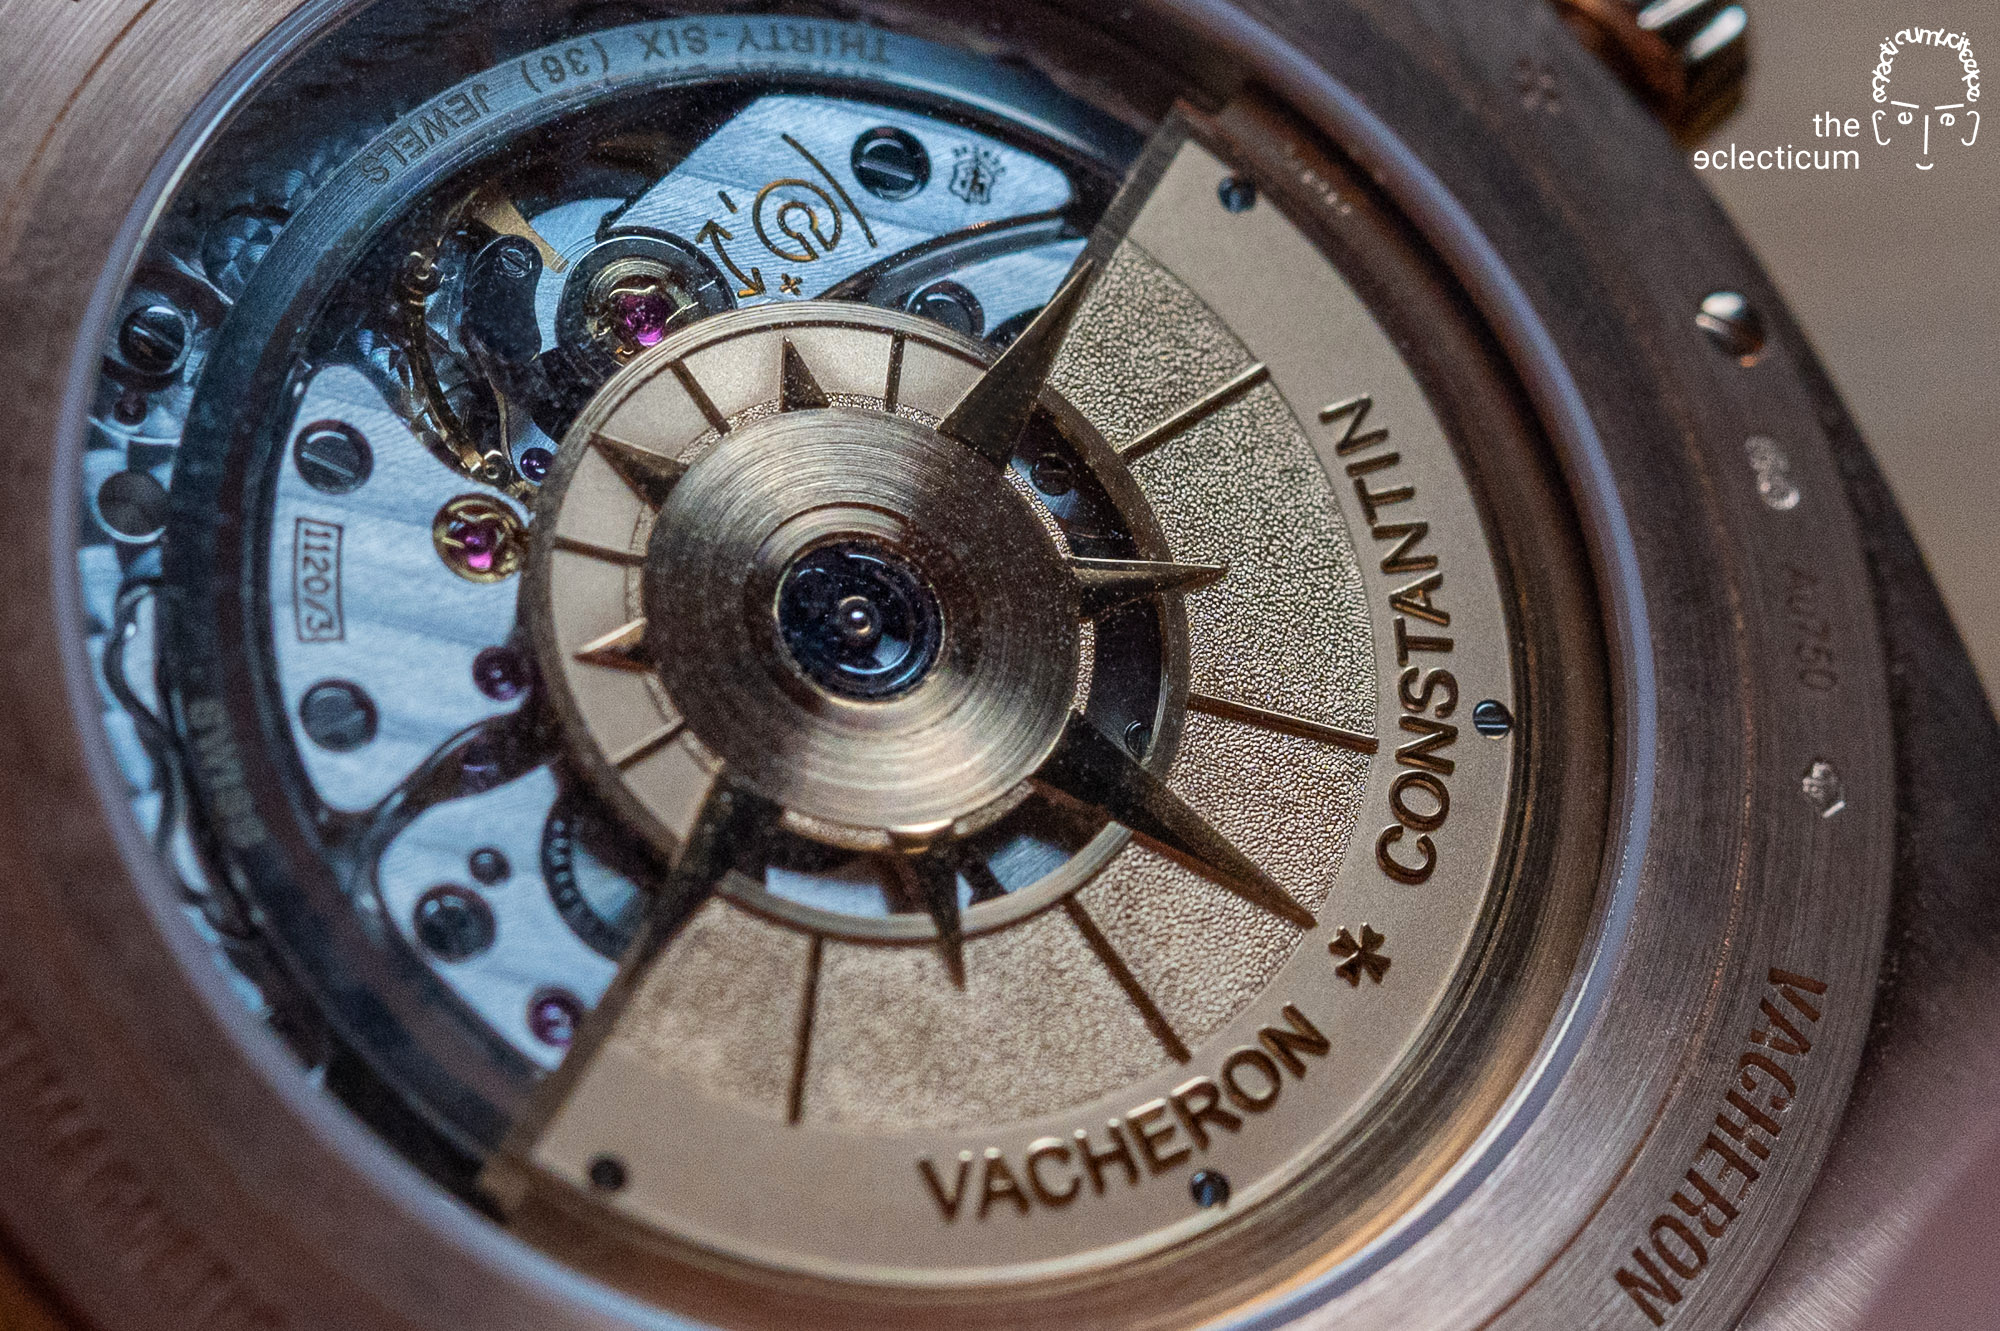 Hands-on: Some snapshots and brief impressions about the ´Overseas Perpetual Calendar Ultra-Thin` from Vacheron Constantin, a charming piece on the outside and a masterpiece on the inside.